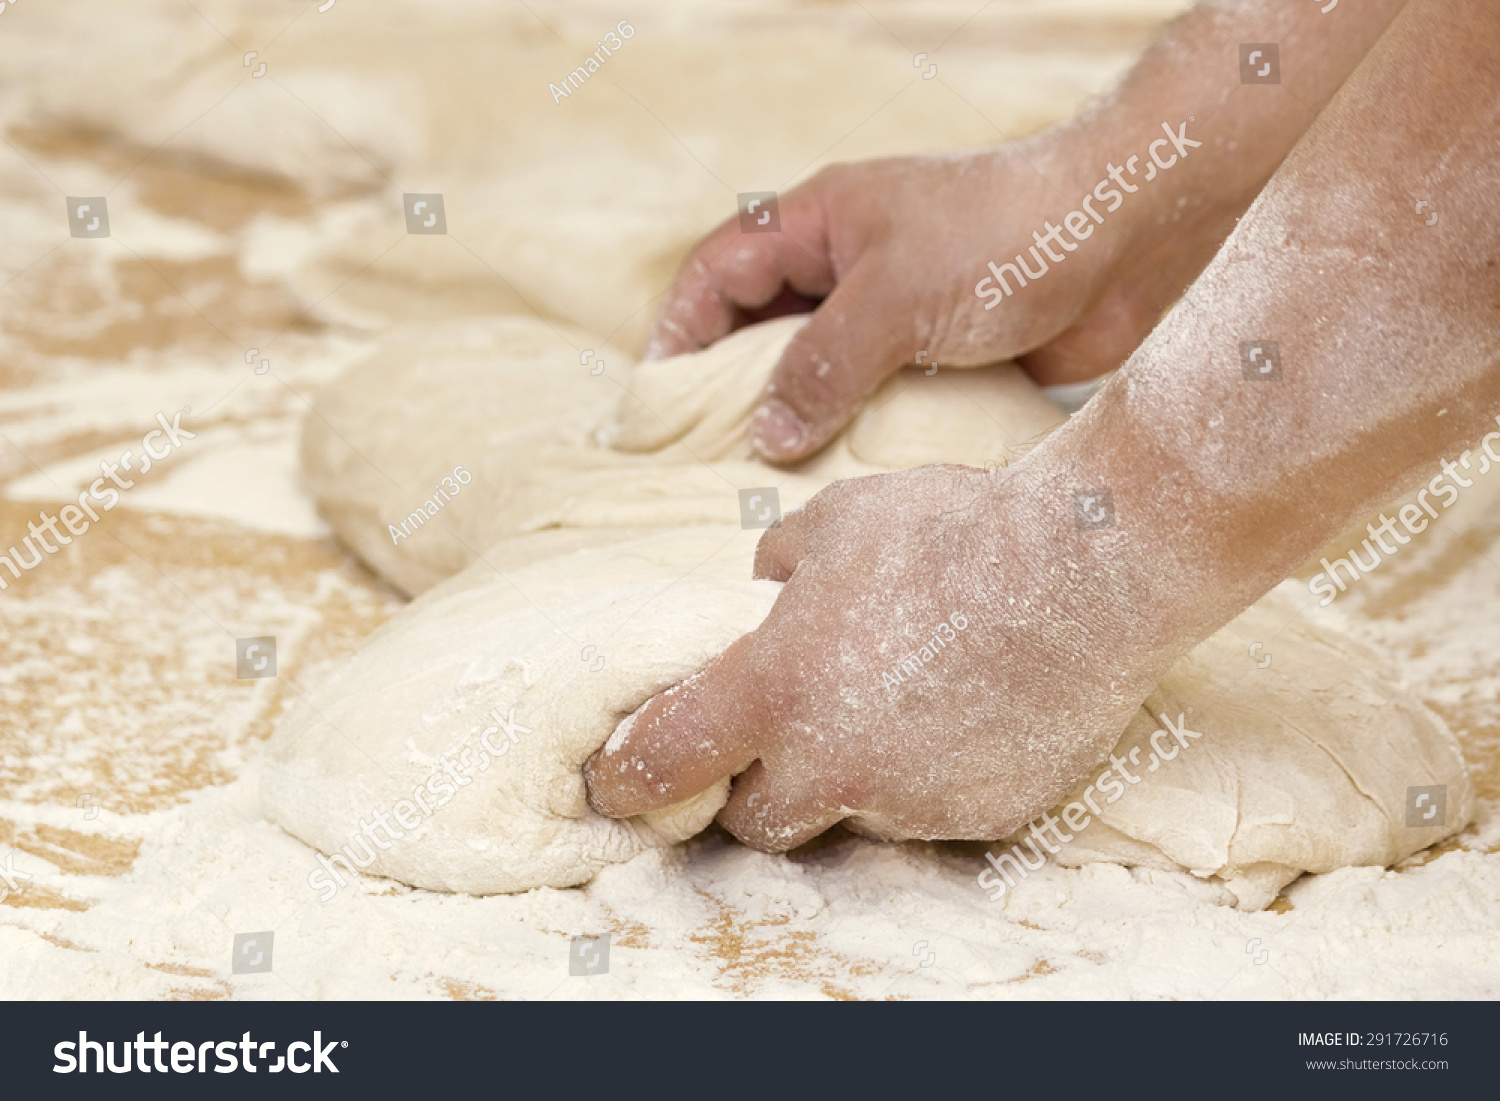 Hands Of A Baker Kneading Dough For Baking Bread In The Bakery. Stock Photography. - 291726716 ...